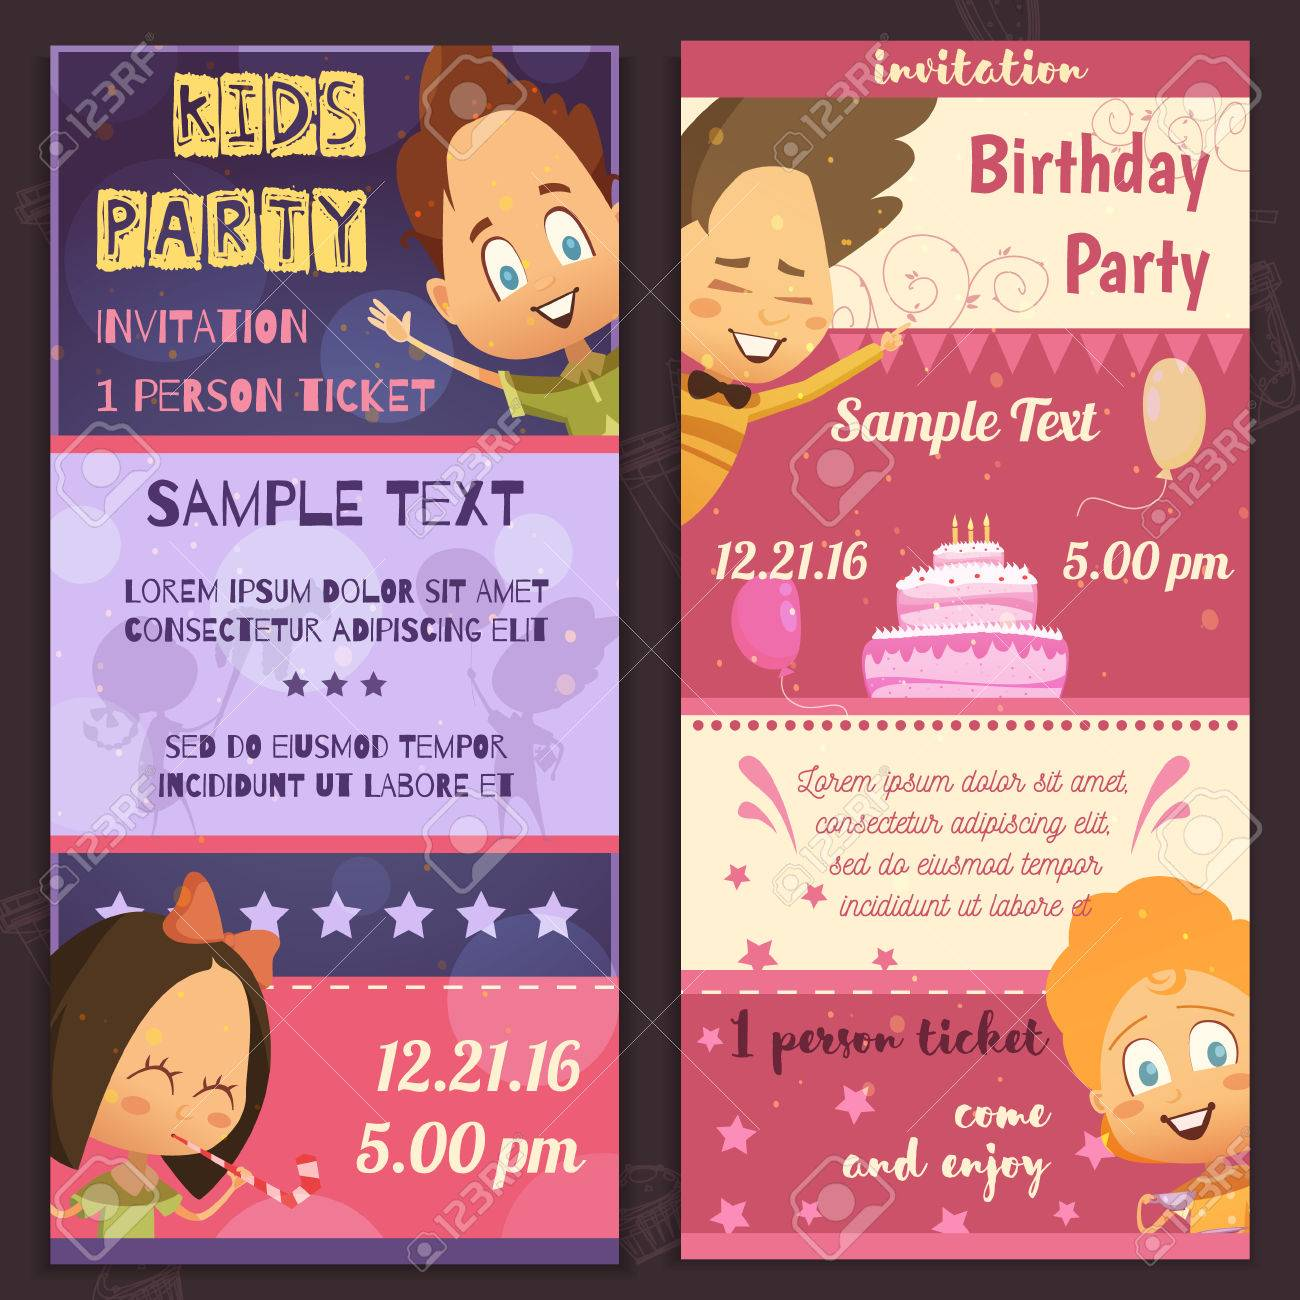 Kids Party Invitation Layout Vertical Banners With Glad Children